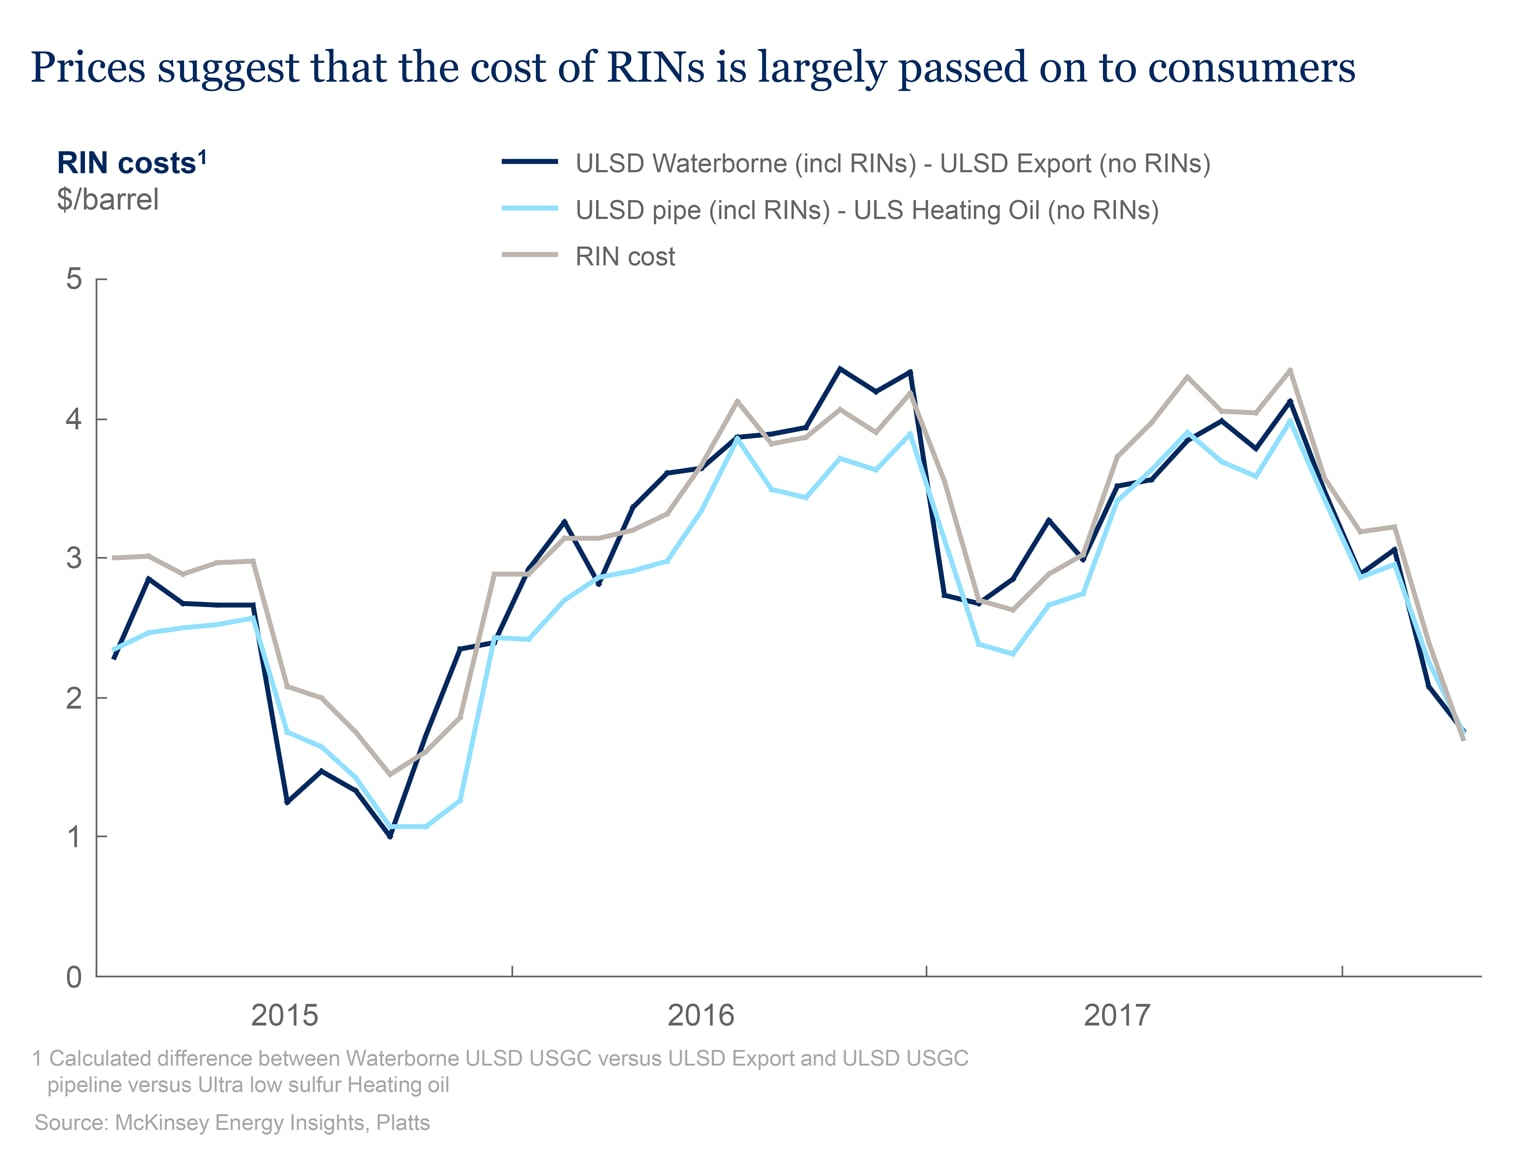 Prices suggest that the cost of RINs is largely passed on to consumers